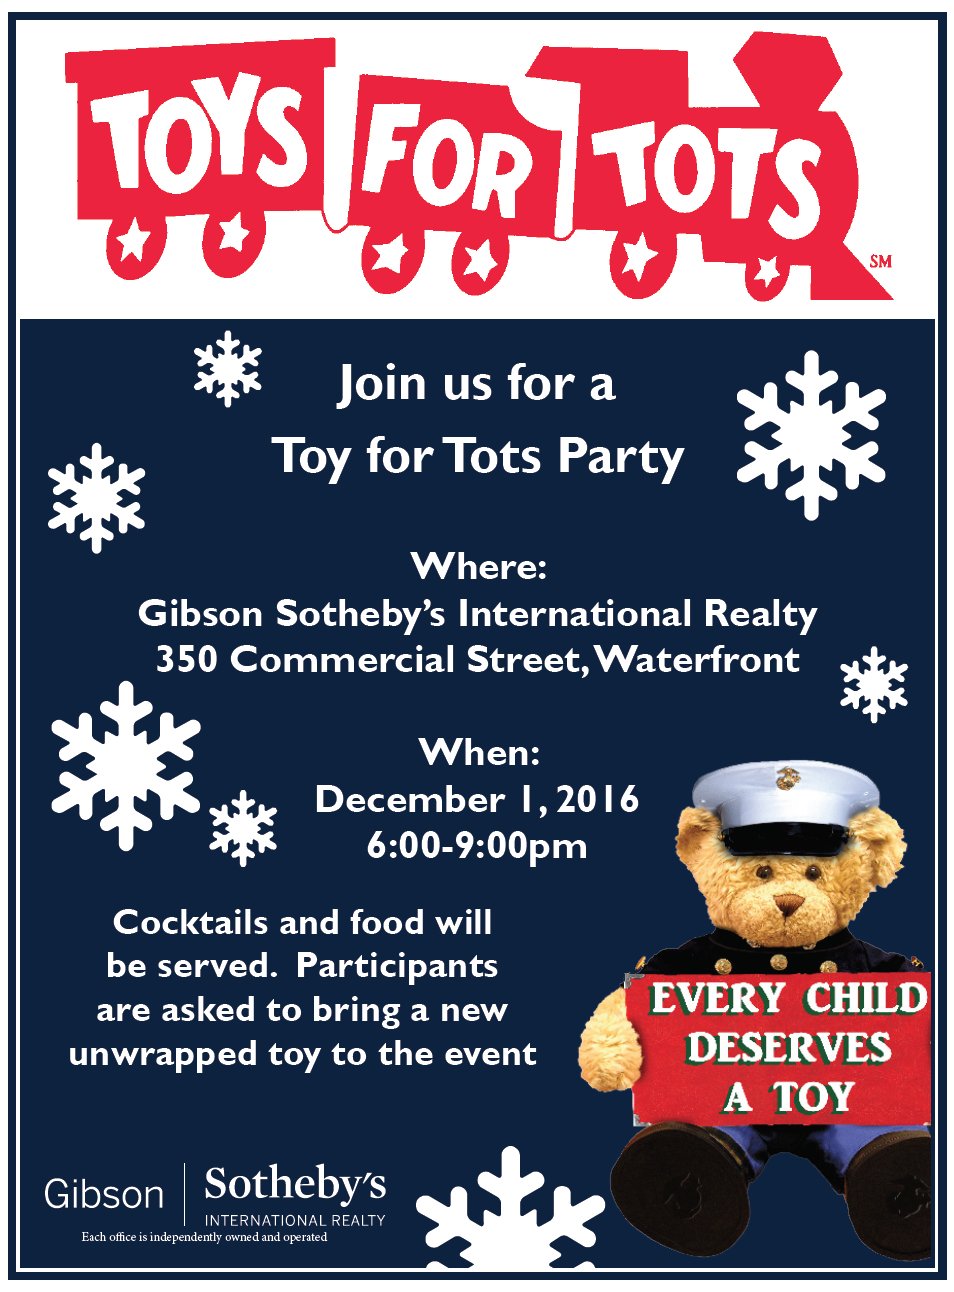 Toys For Tots Flyer 2017 : Toys for tots party on december st northendwaterfront